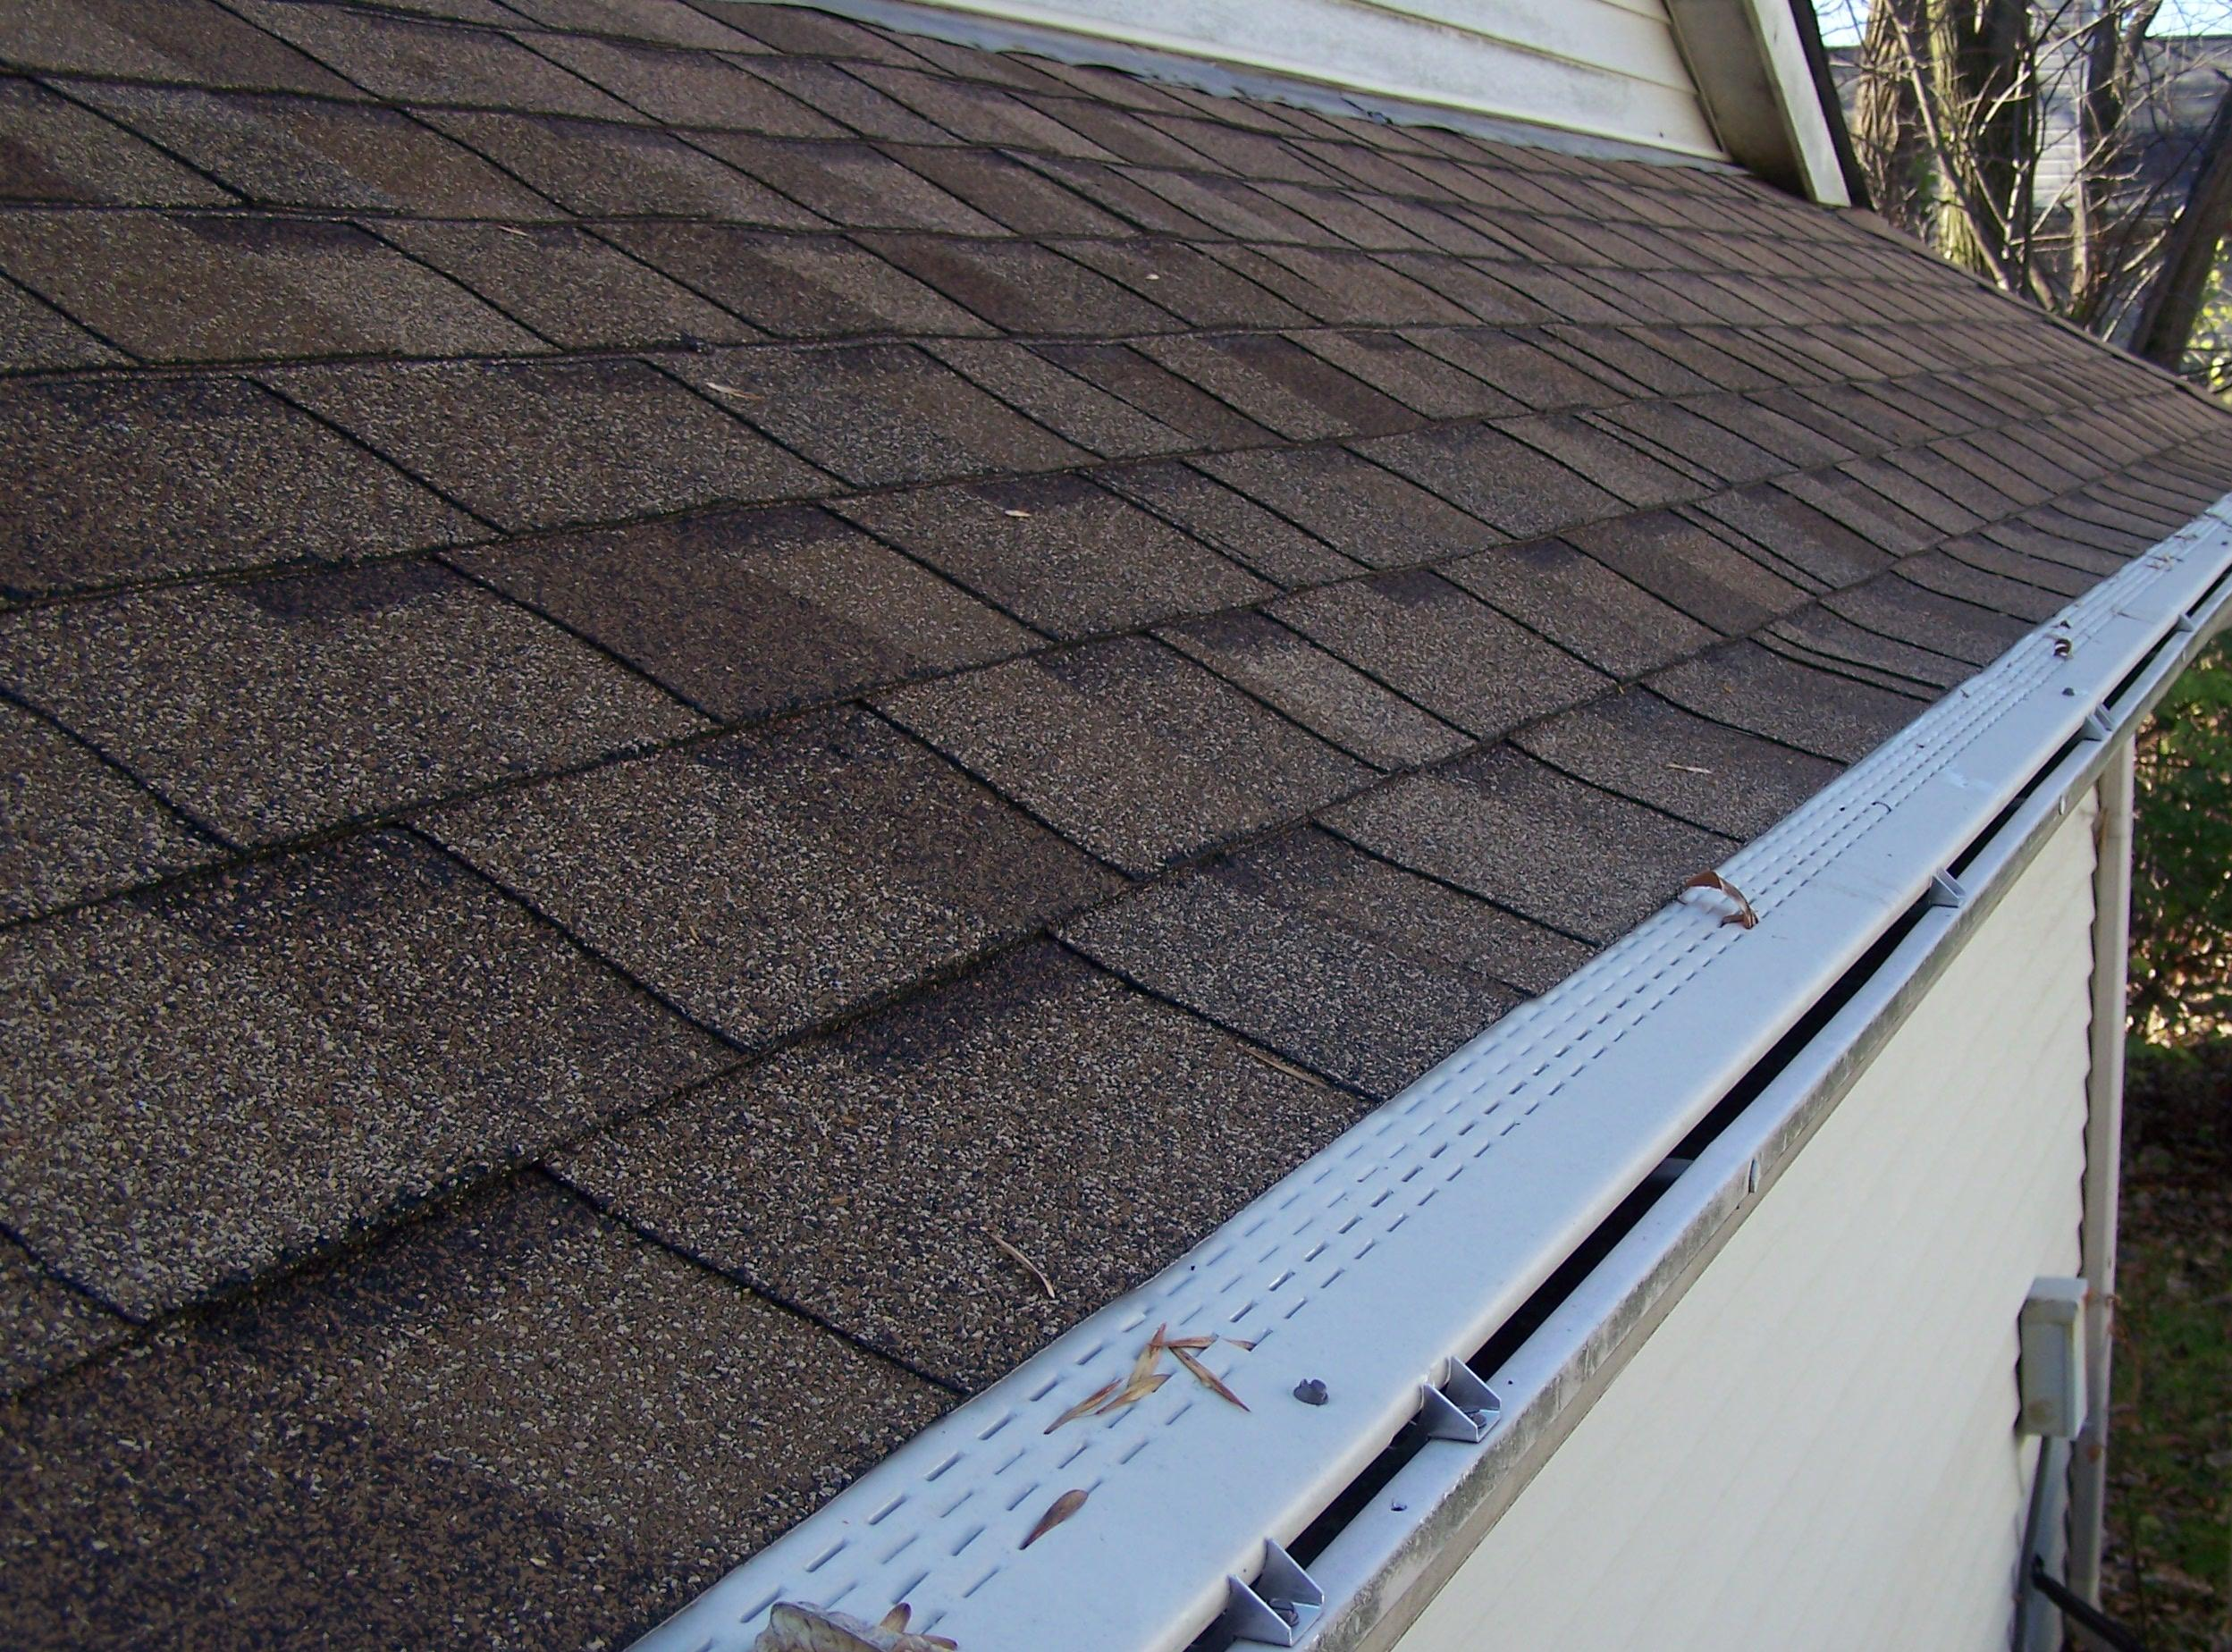 Original Gutter Cover maintains your home's curb appeal.